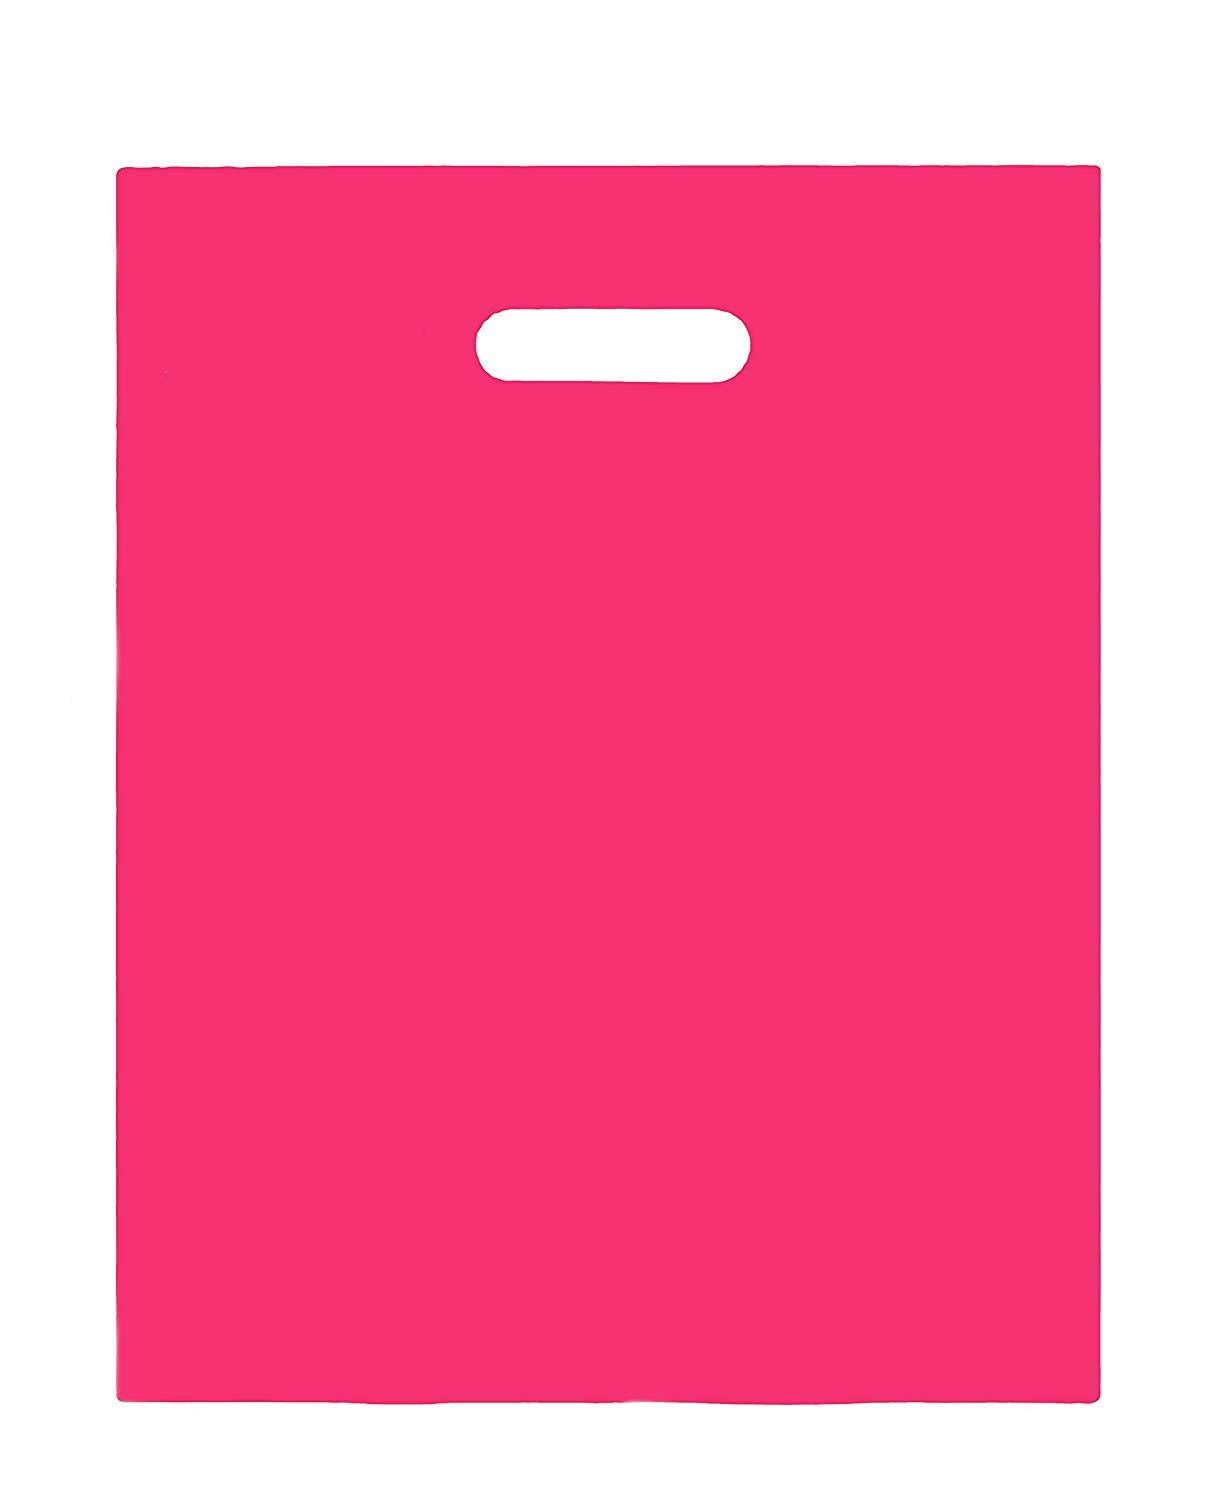 100 Merchandise Bags 9x12 Fuchsia, Die Cut Handles, No Gusset, Strong, Durable, and Tear Resistant Bags Perfect for Retail, Boutiques or Events